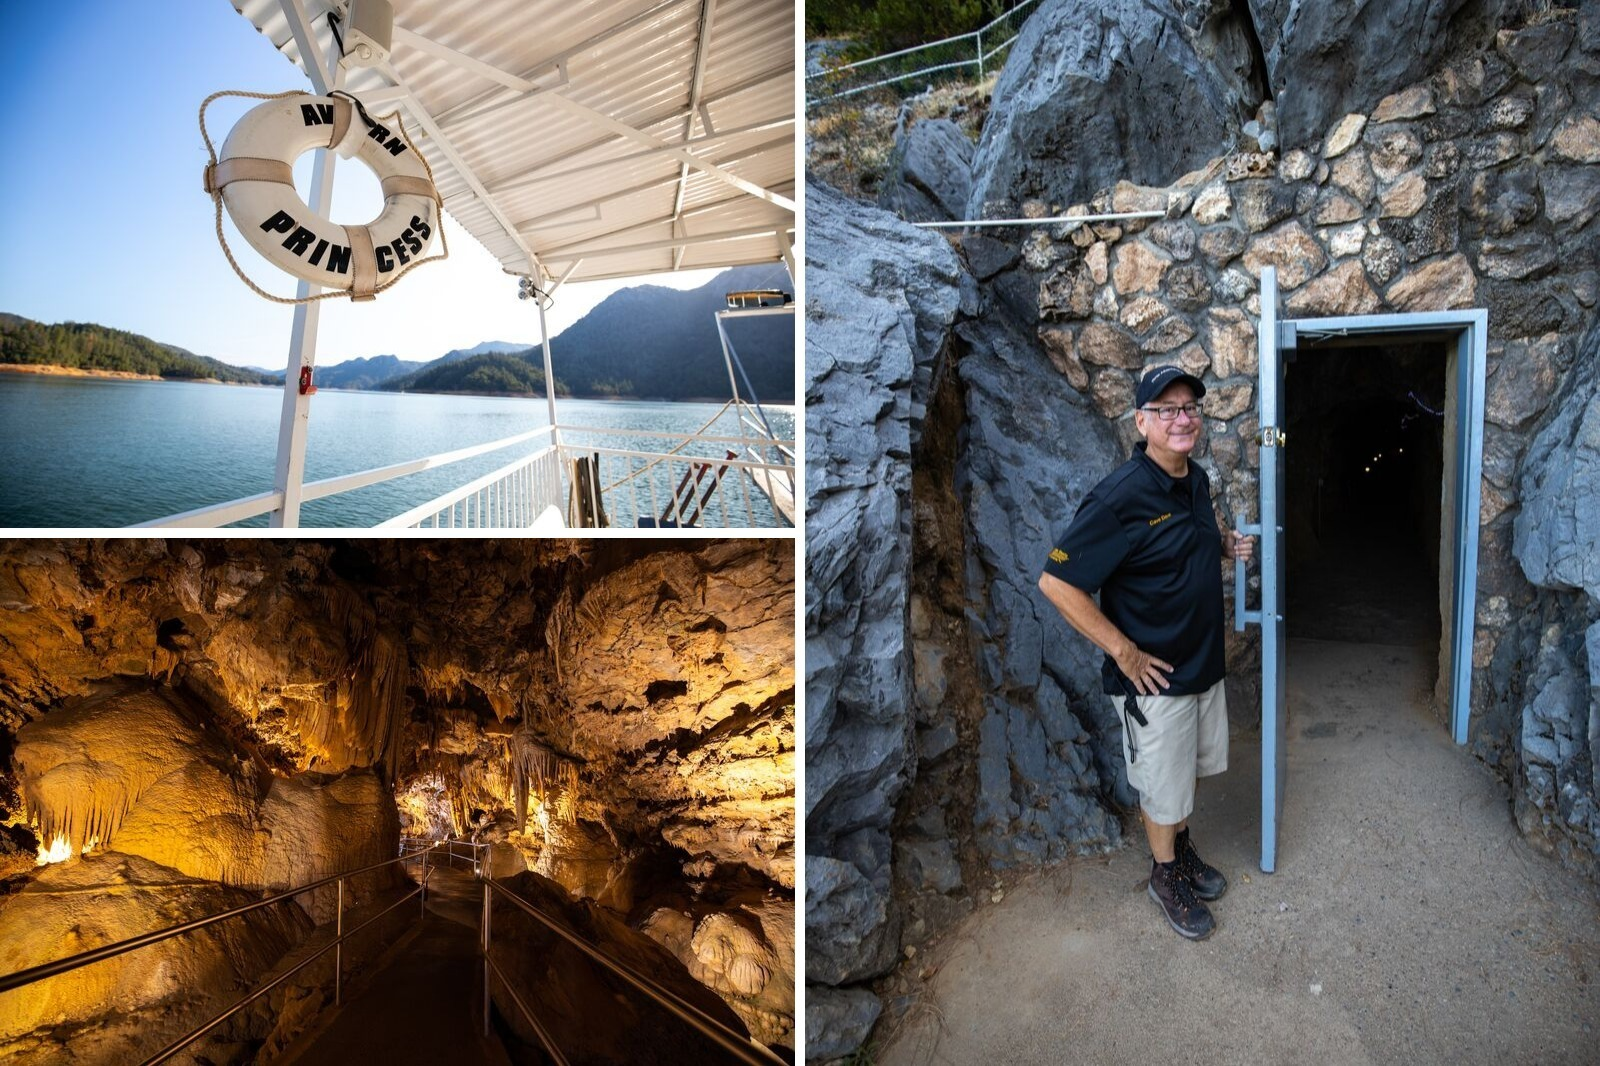 Adventure at Shasta Caverns Lake Shasta on your Road Trip